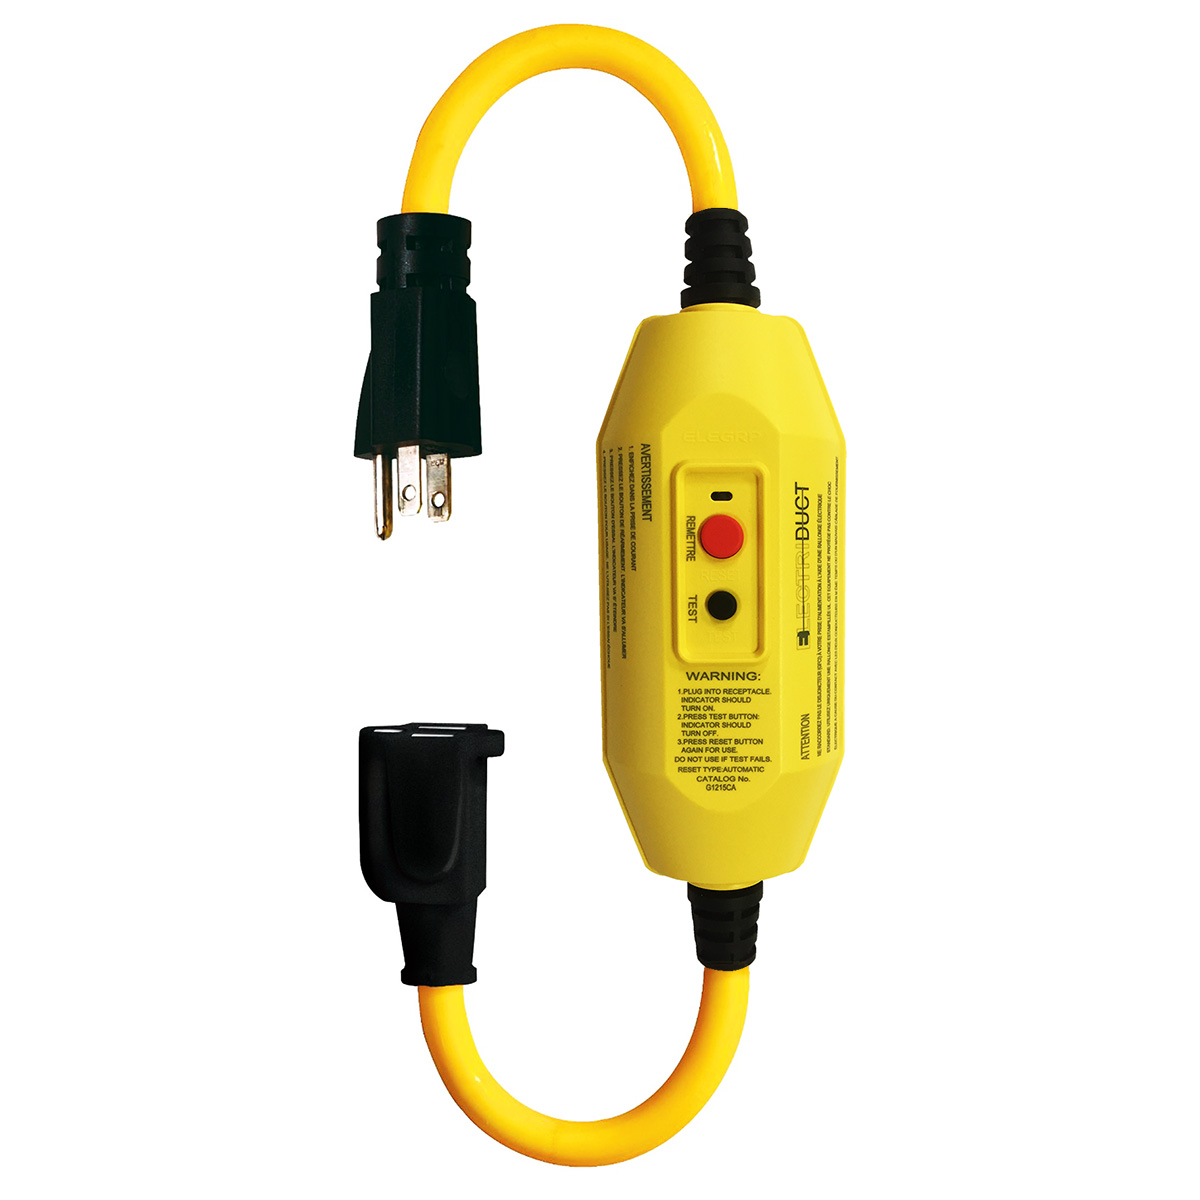 Gfci In Line Portable Adapter Cords Single Outlet Triple Tap